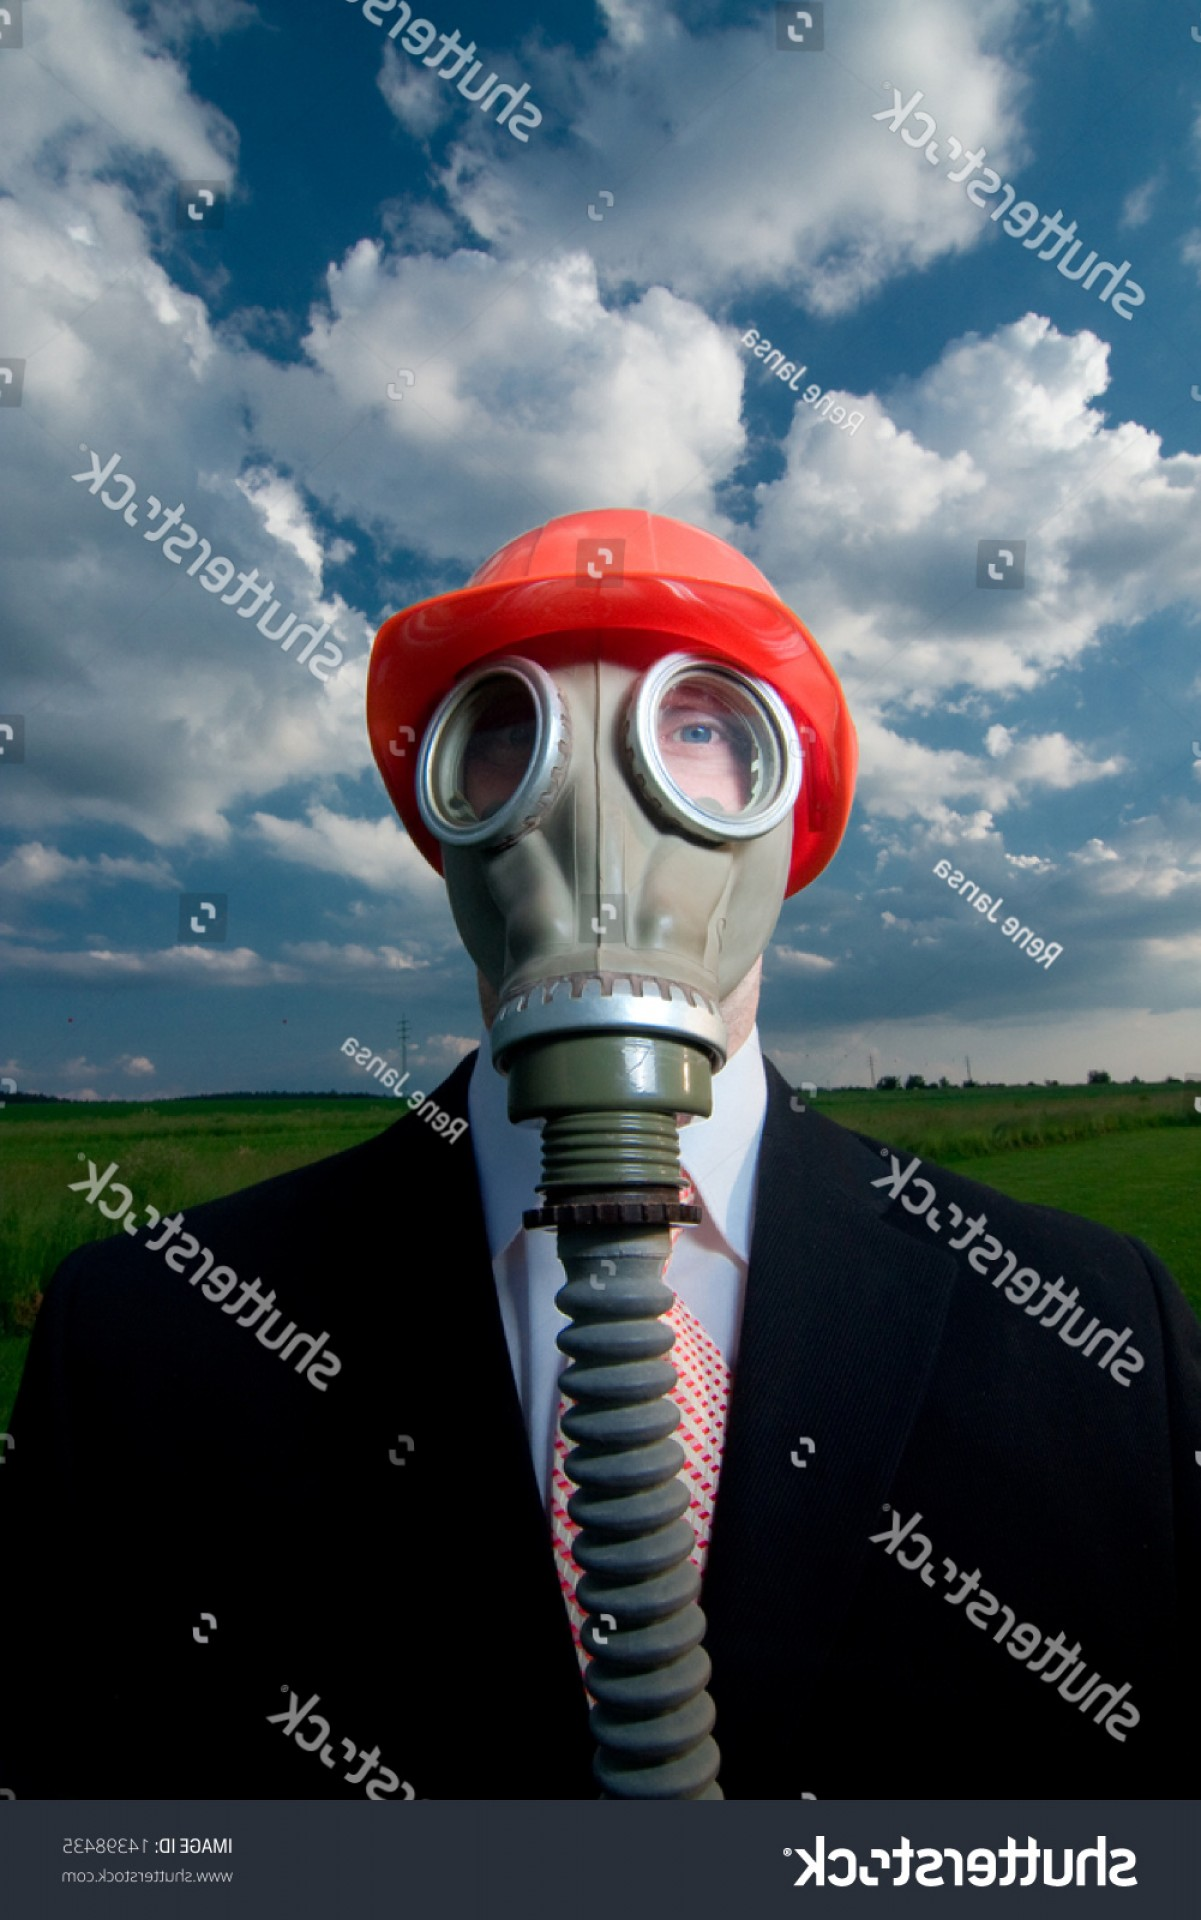 Gas Mask Suit And Tie Vector: Man Suit Tie Gas Mask Red